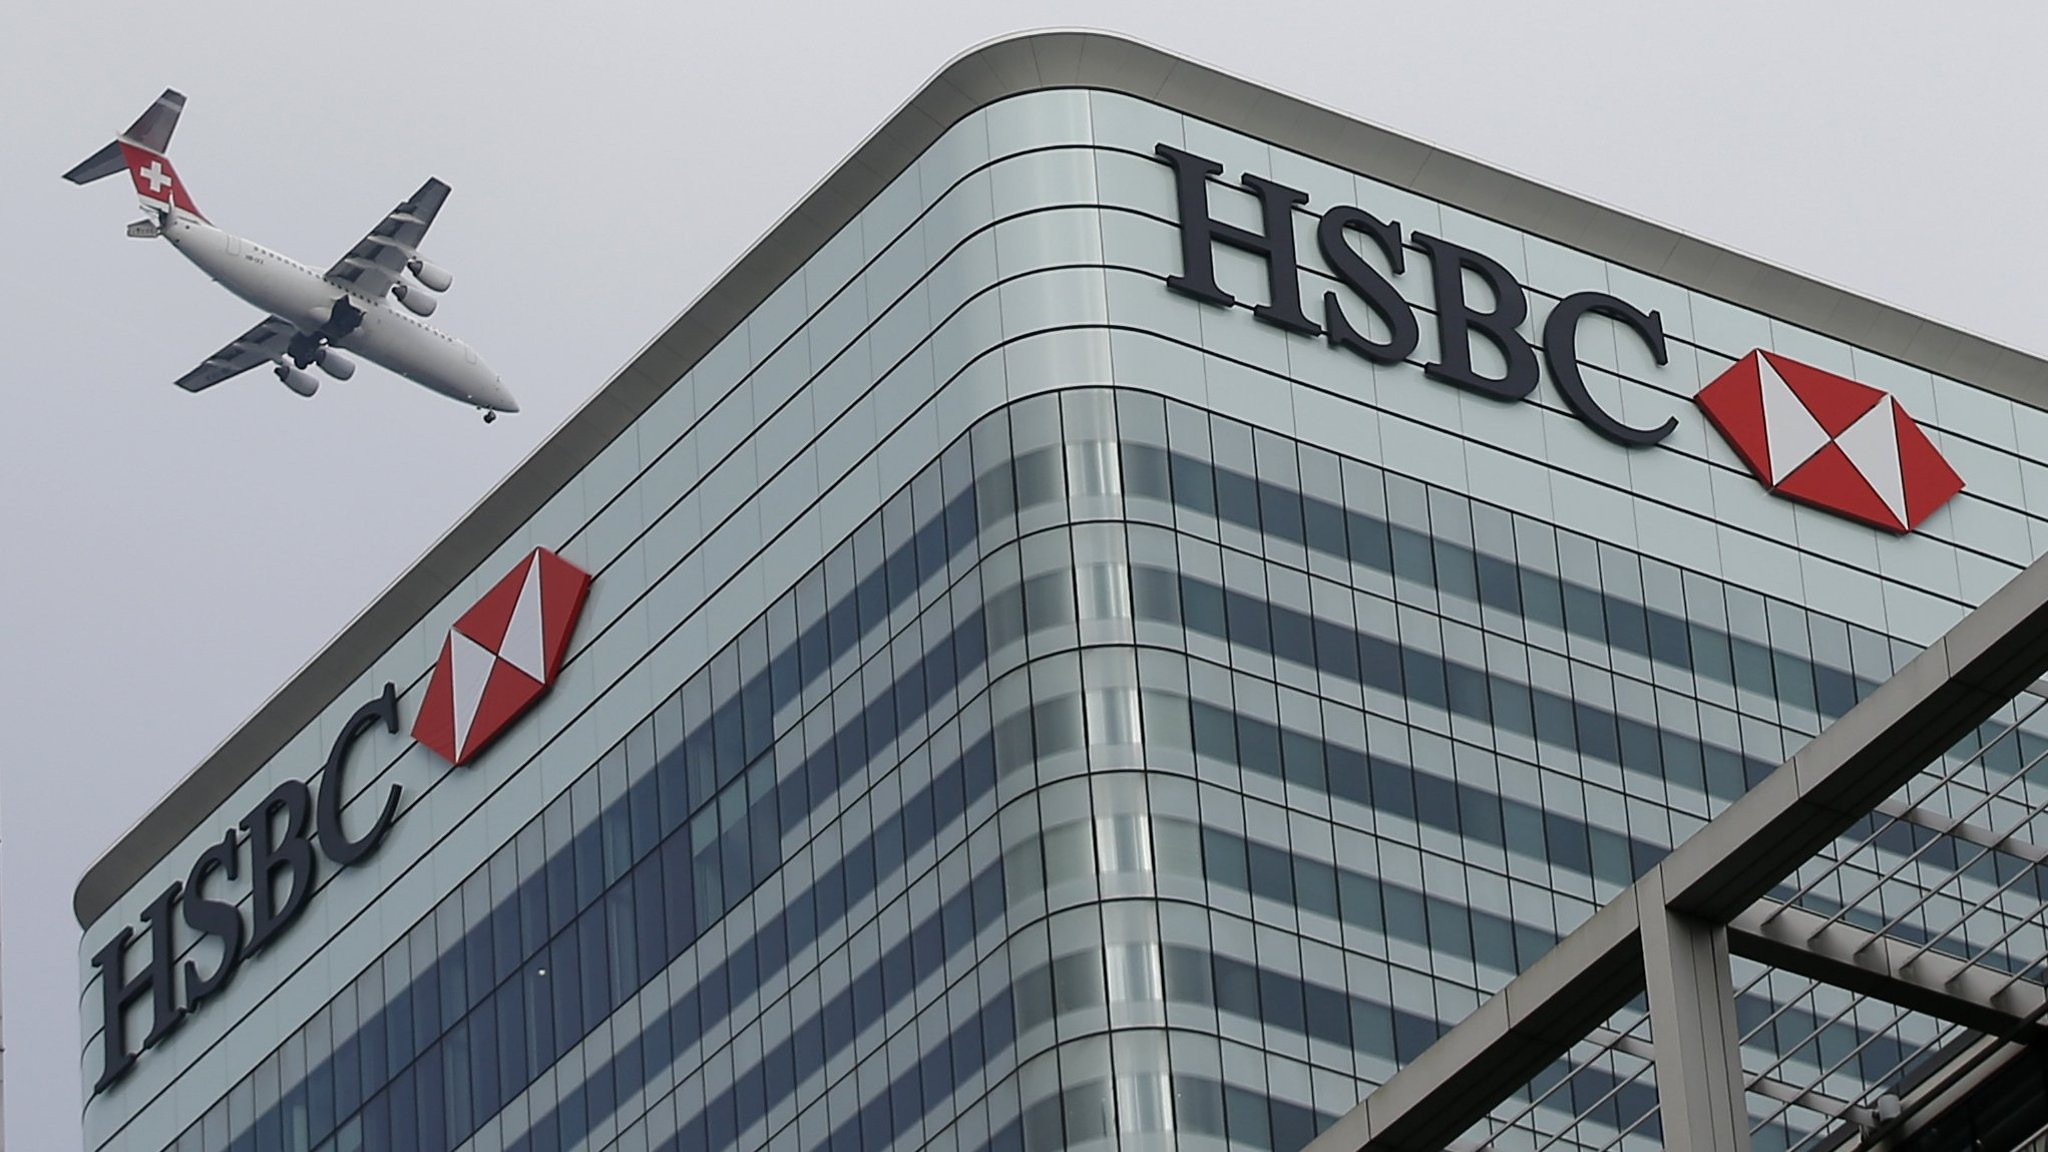 Hello, this is your bank speaking: HSBC unveils voice recognition